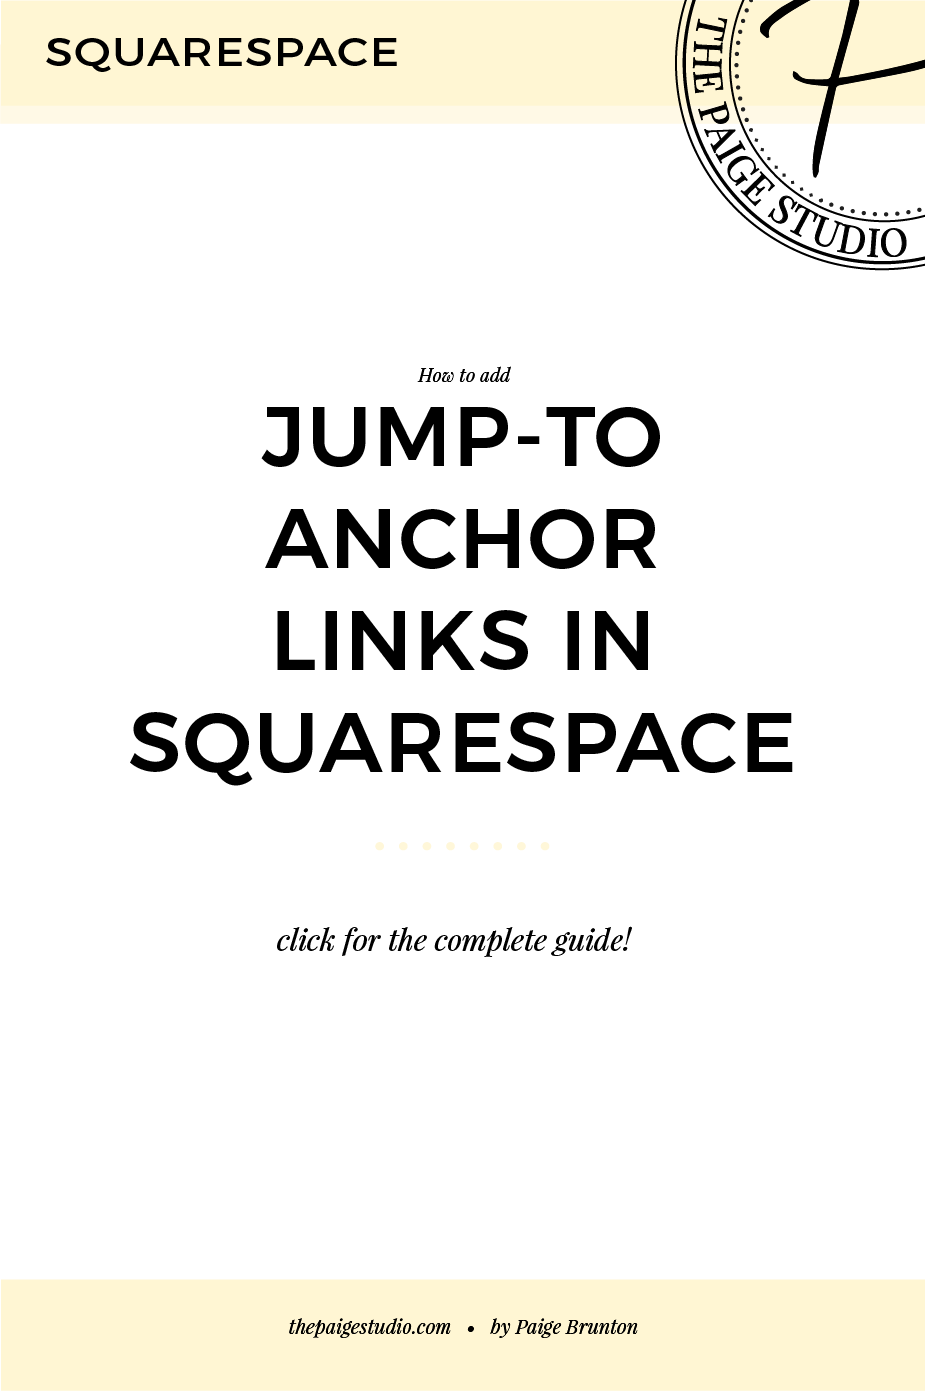 Squarespace hack How to add jump to anchor links on a page.png